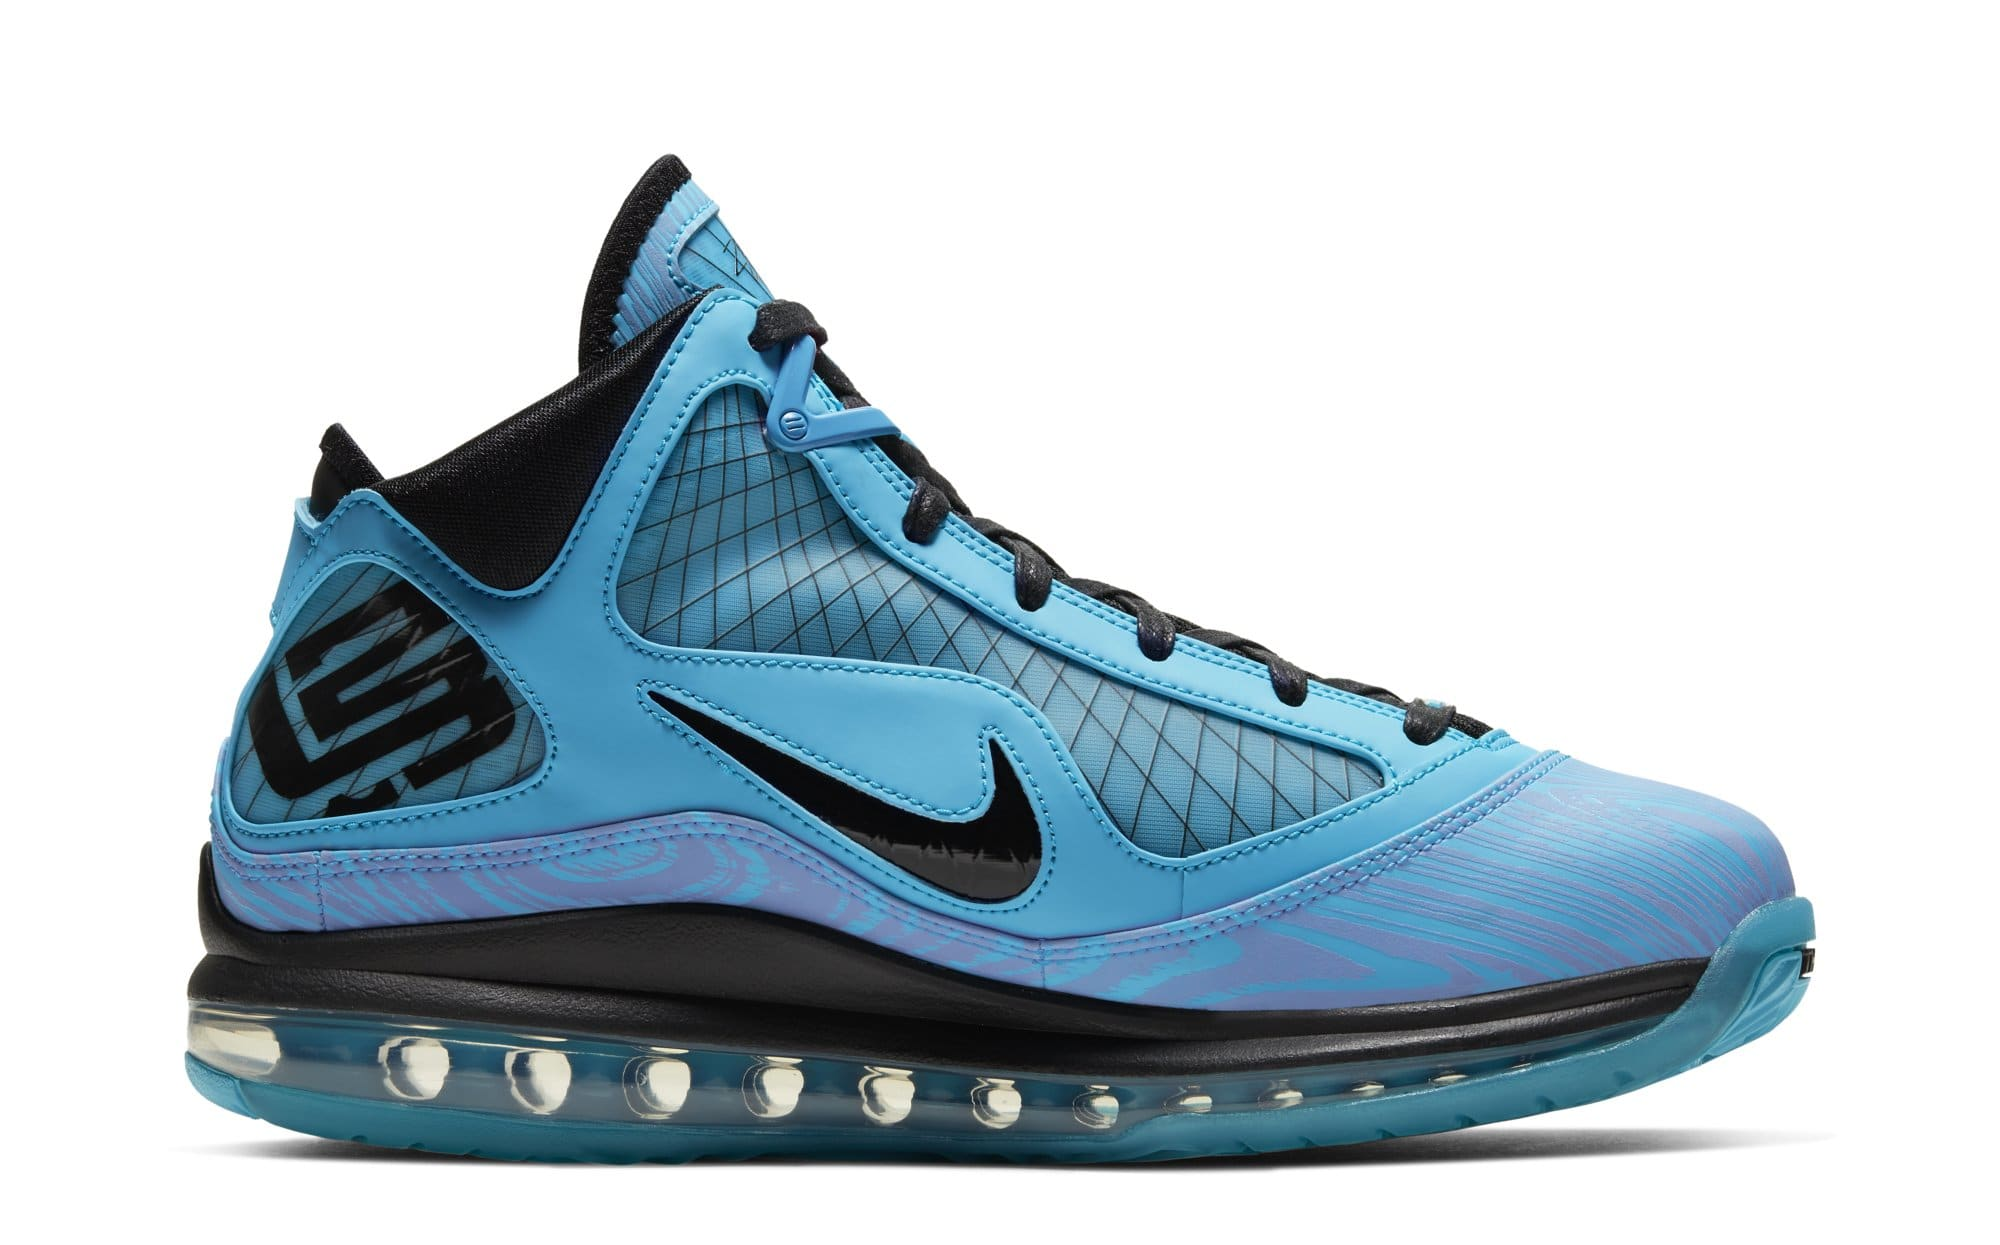 Nike LeBron 7 'All-Star' CU5646-400 (Medial)